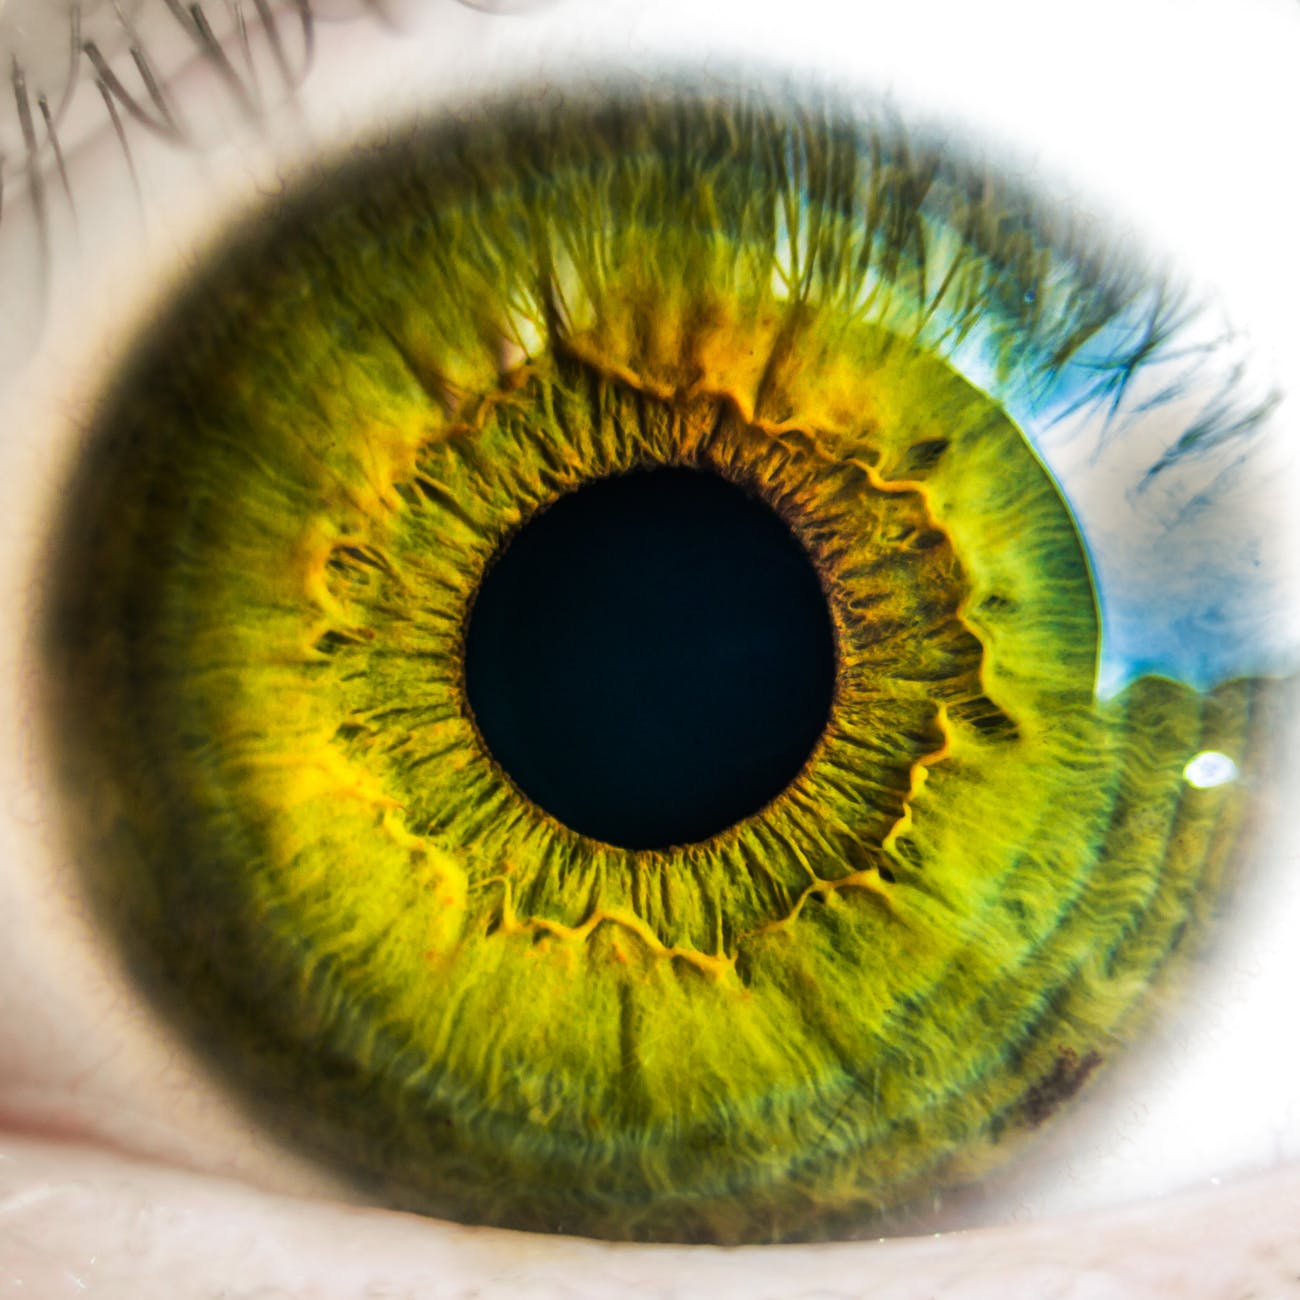 Eye Health – What Actually Worsens Vision and What Supports the Eyes?